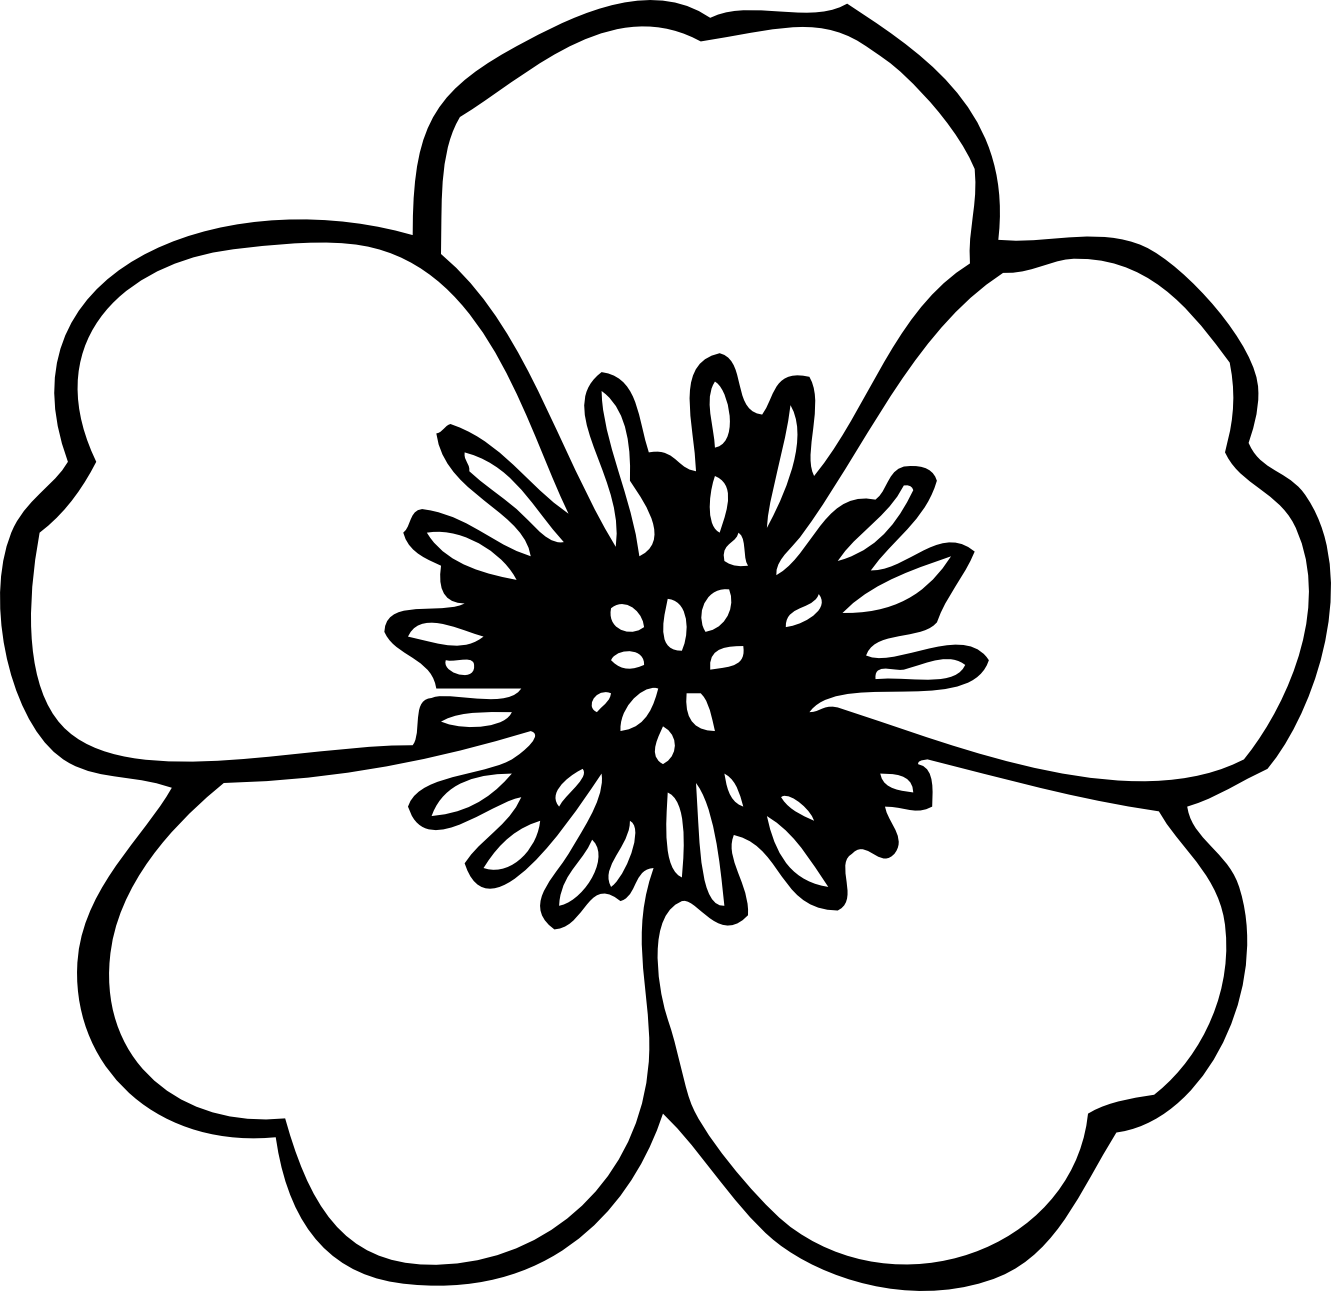 tulip clipart black and white